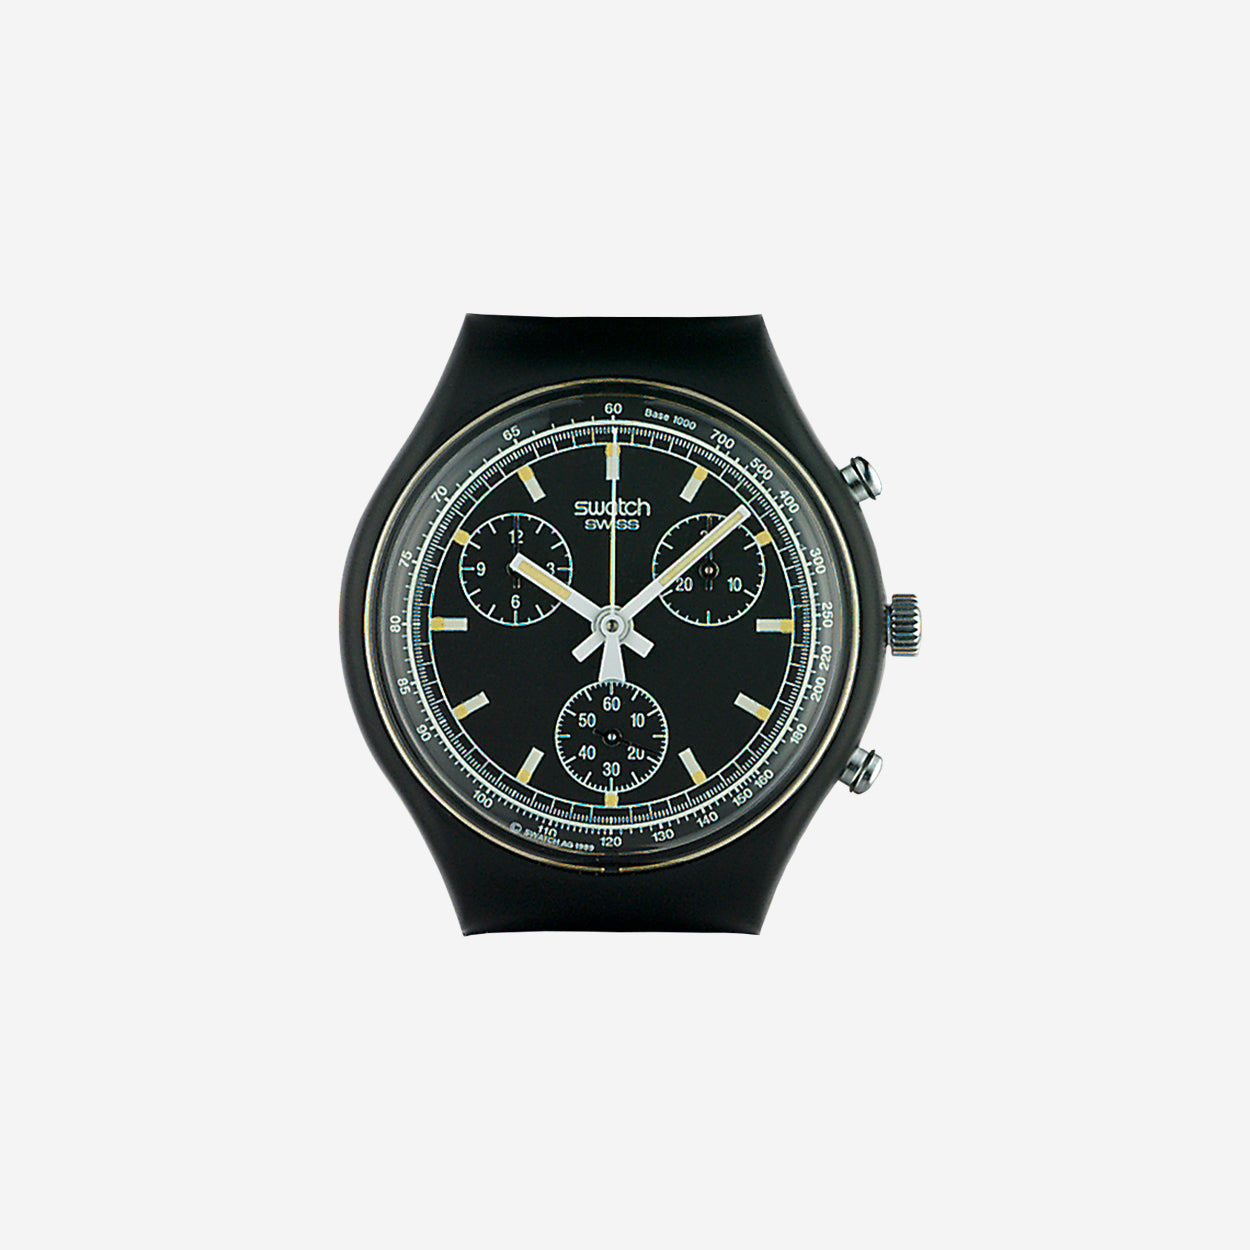 Swatch Black Friday chronograph one of the first chronographs released by Swatch in 1990 for A Collected Man London